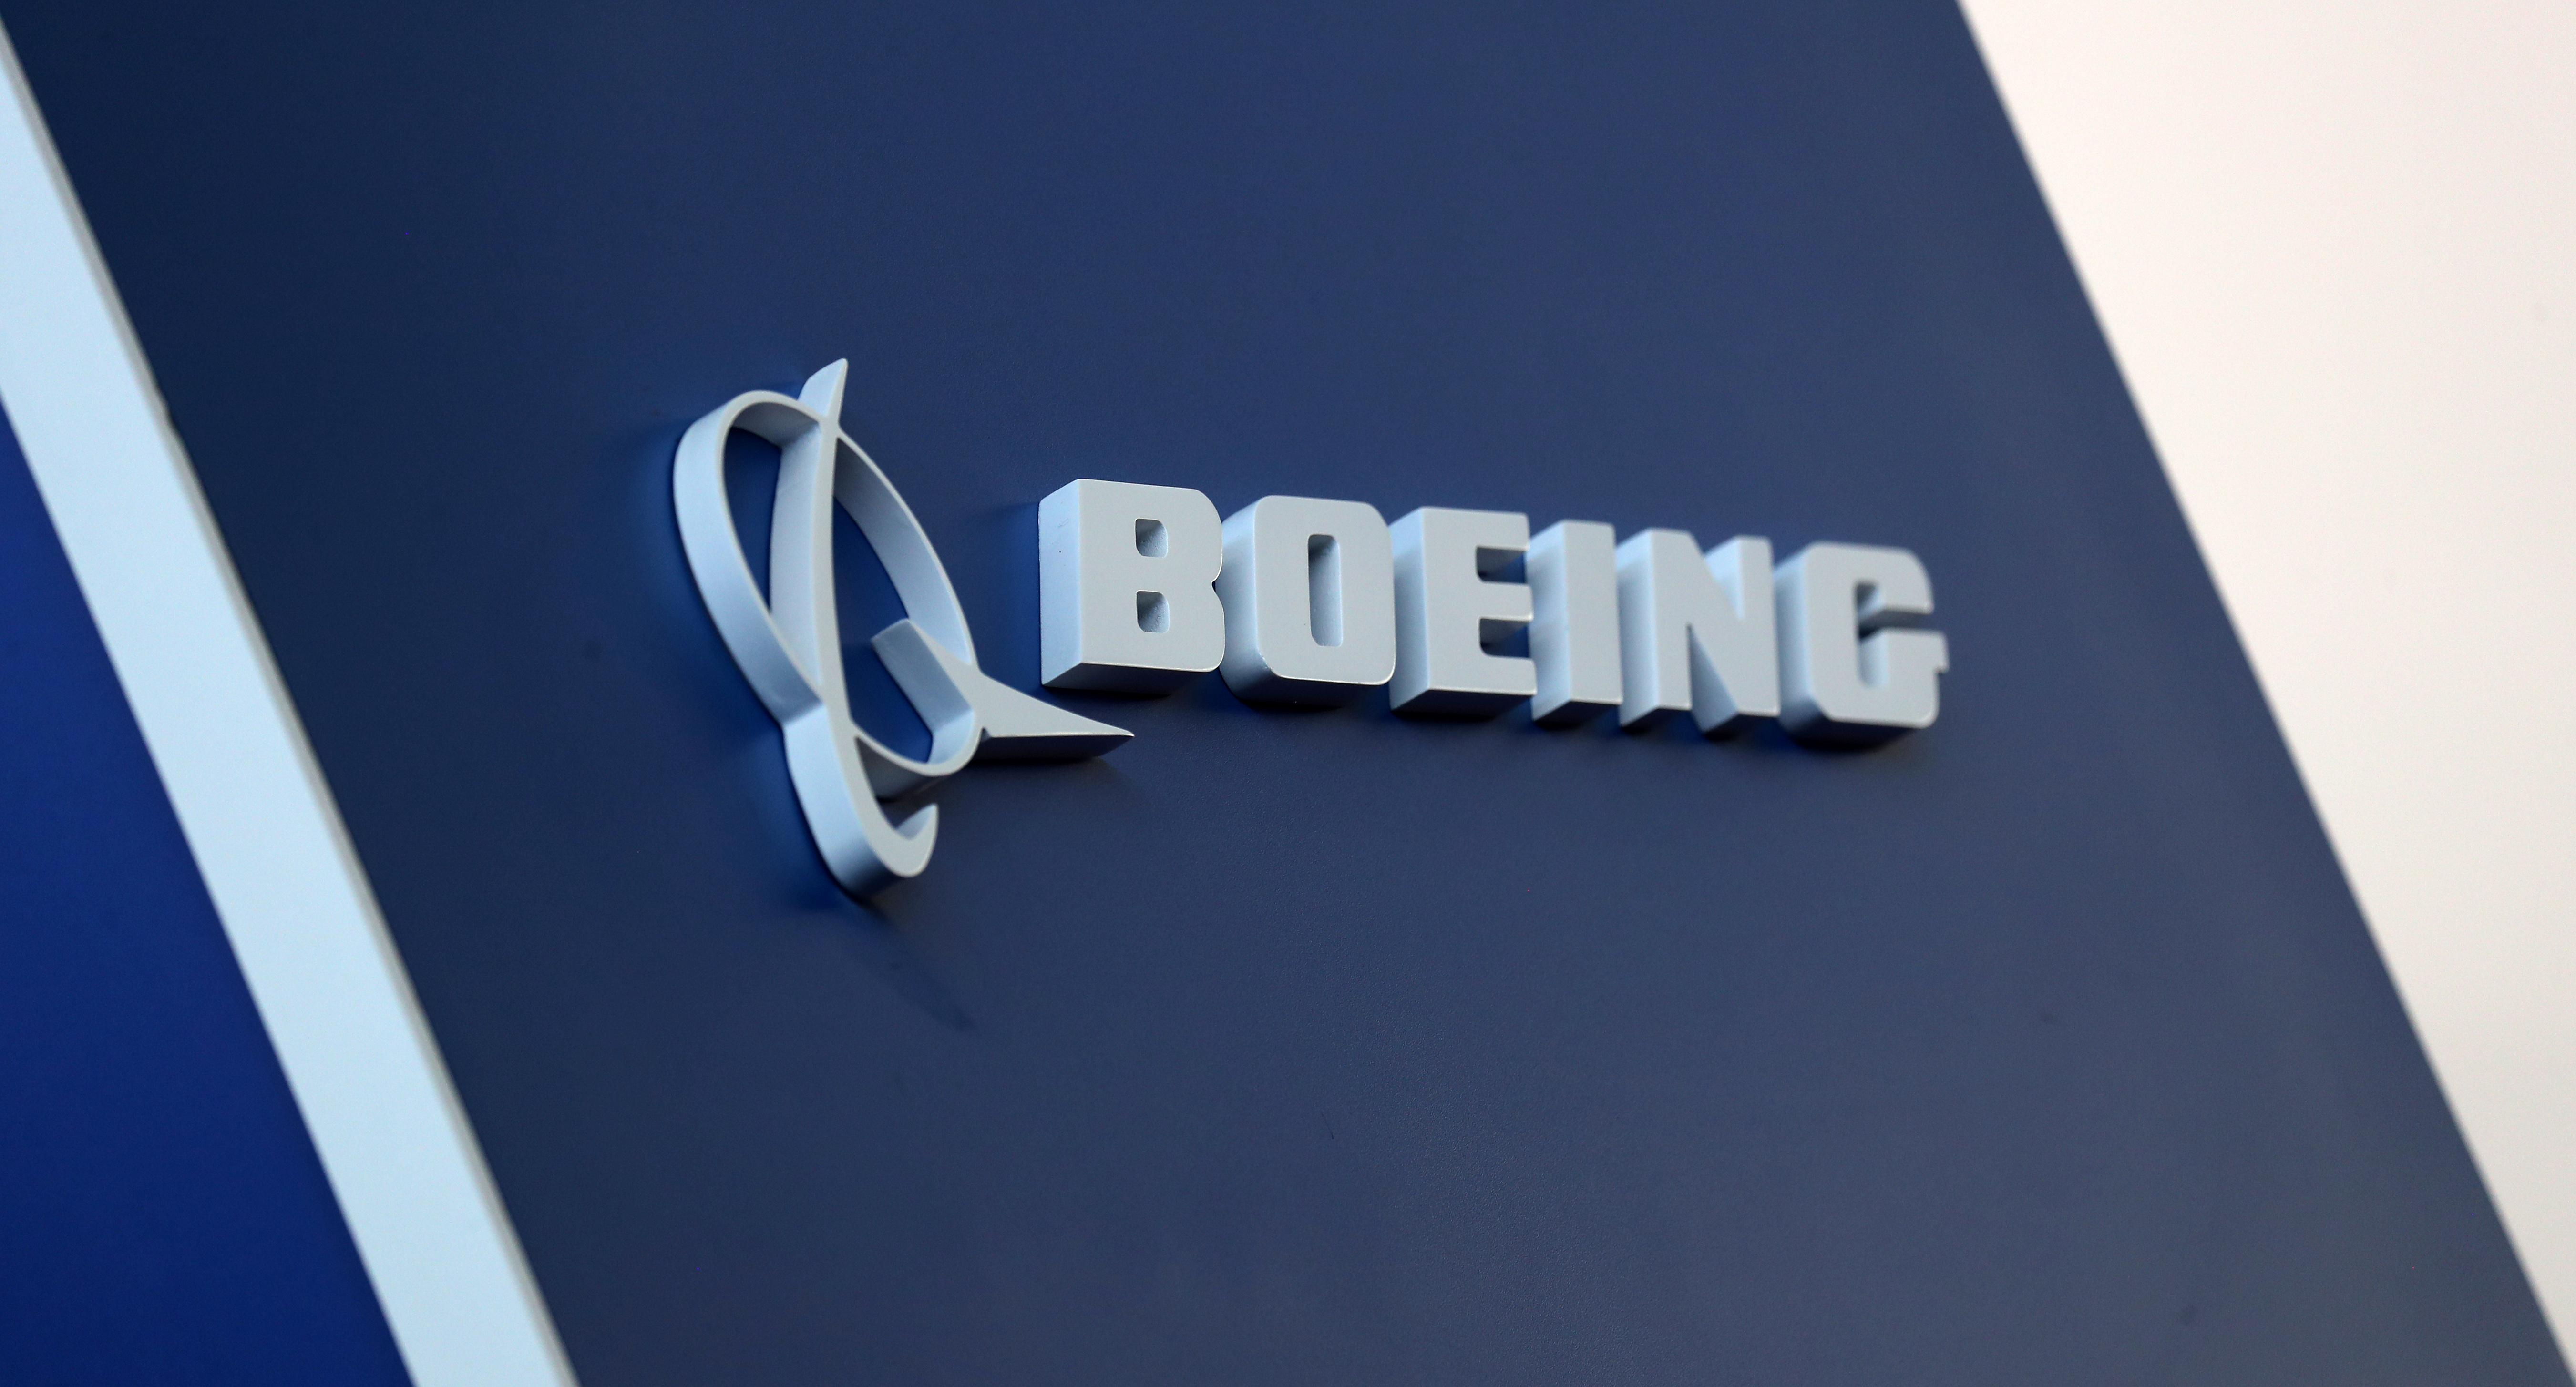 Boeing received 'unnecessary' contract boost for astronaut capsule,...